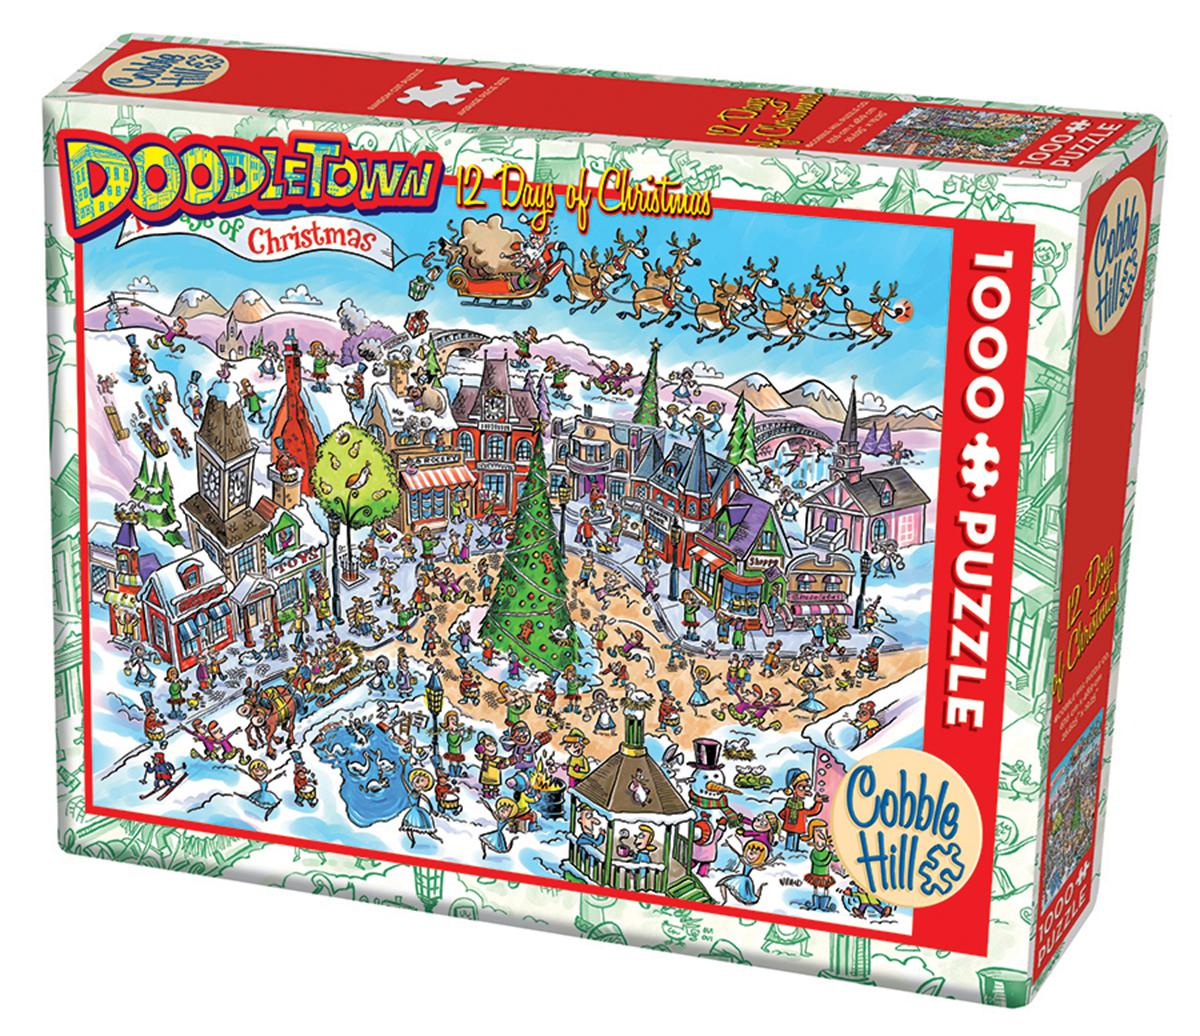 Doodletown 12 Days of Christmas 1000 Piece Puzzle